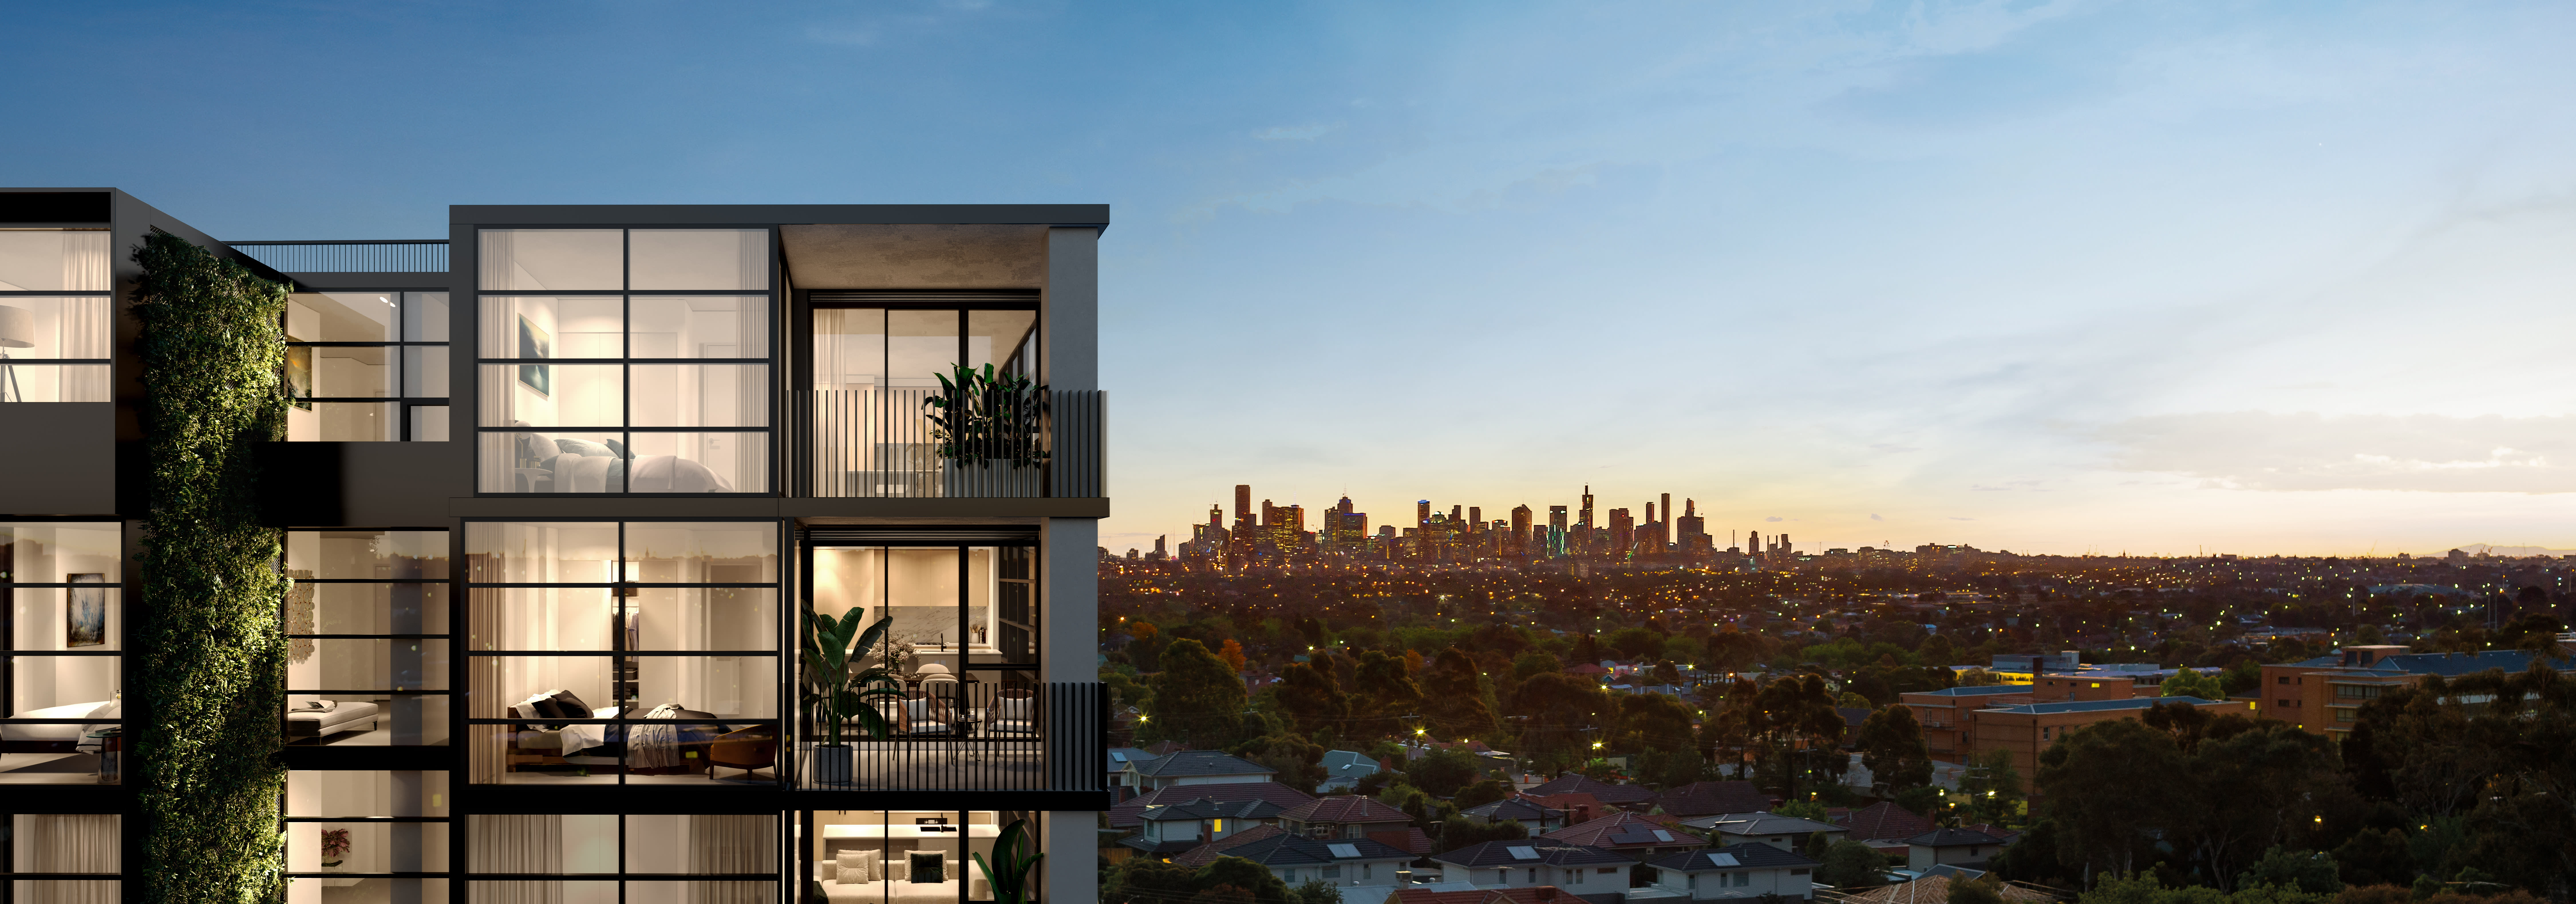 Display Tour: Ivanhoe Gardens by Blue Earth Group in Ivanhoe, VIC